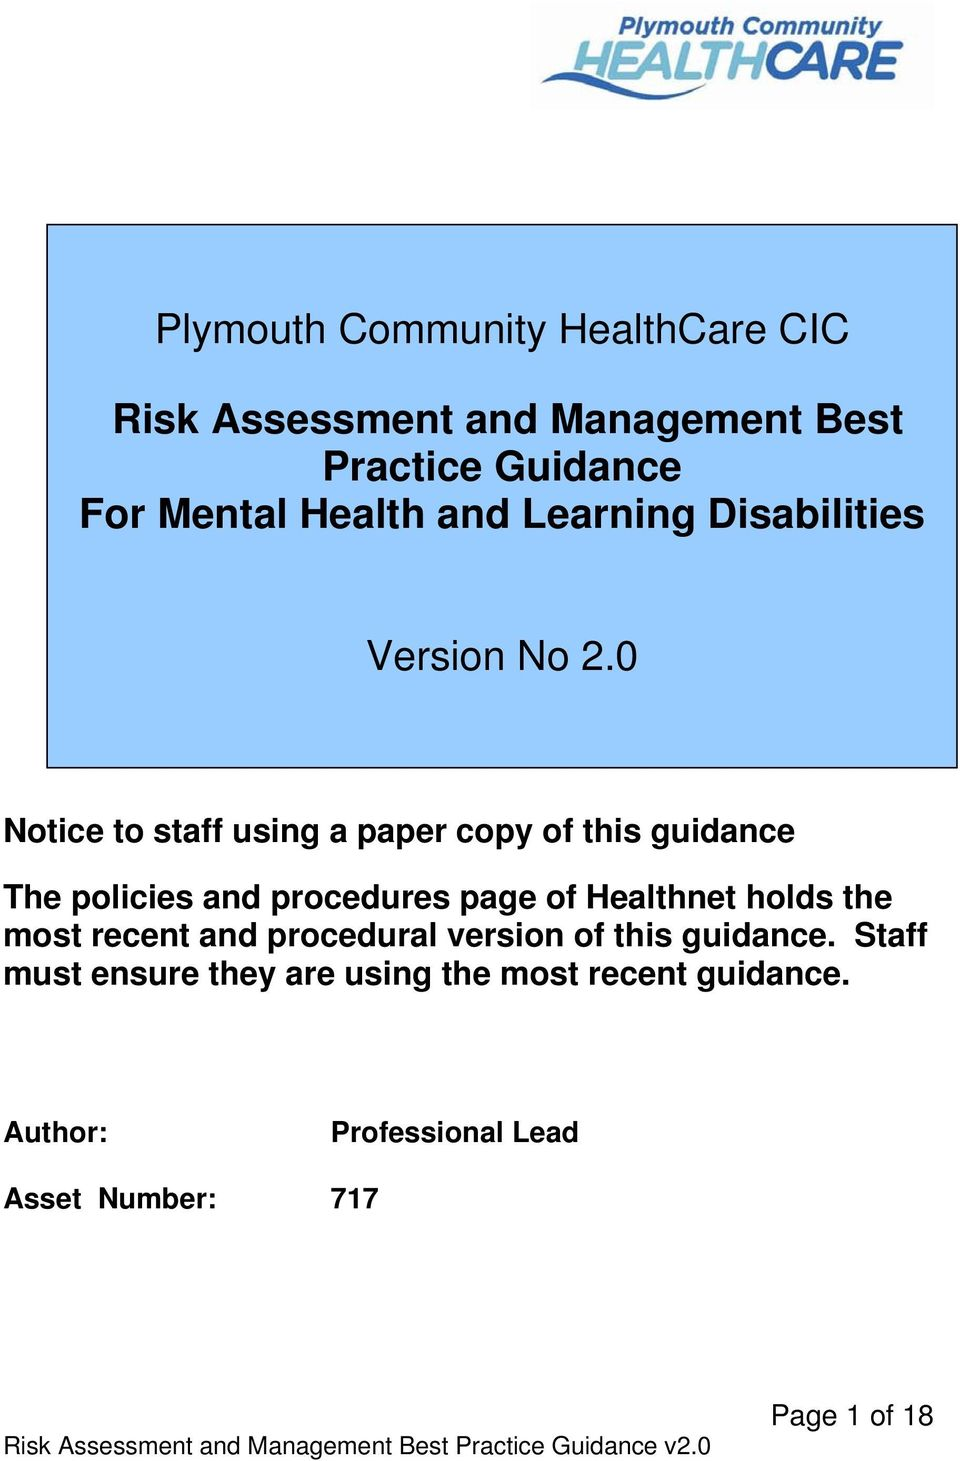 0 Notice to staff using a paper copy of this guidance The policies and procedures page of Healthnet holds